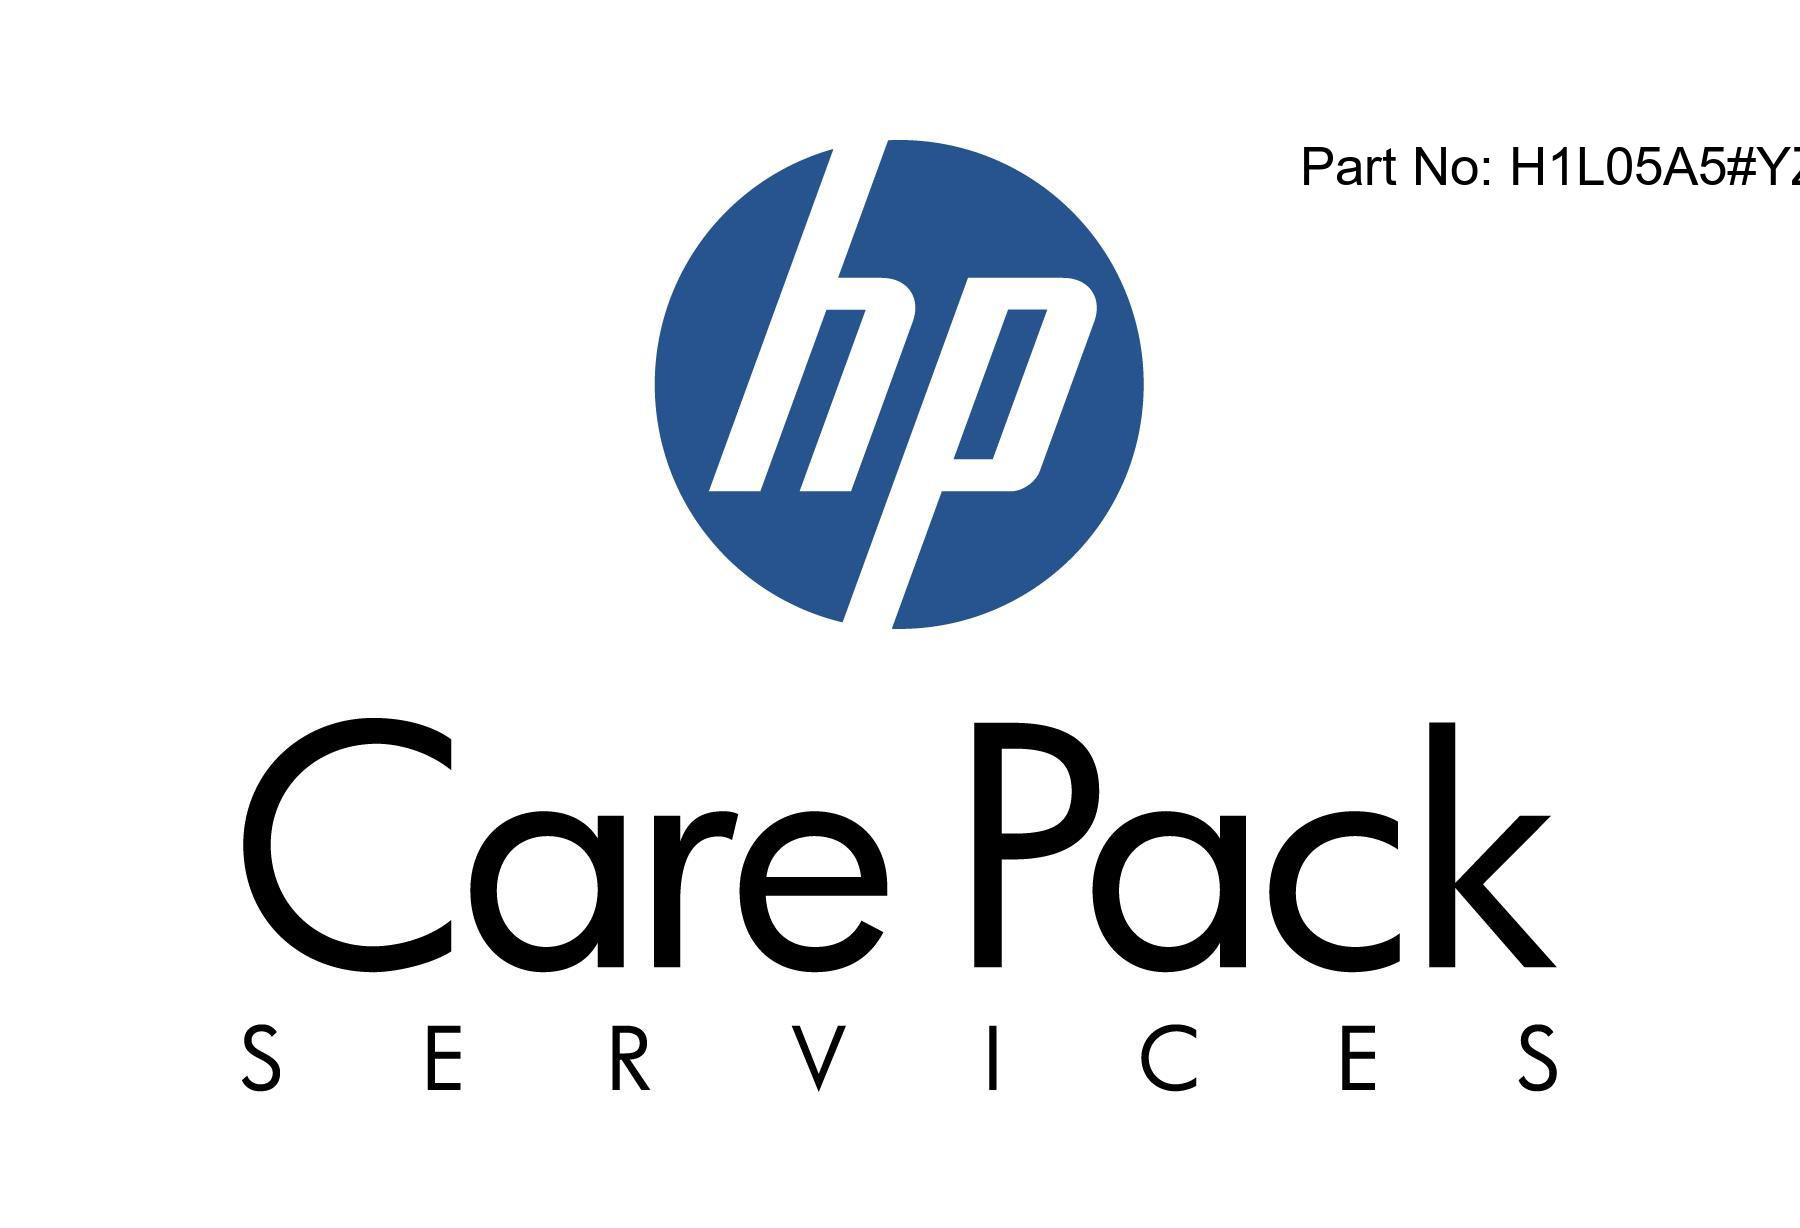 Standard Partner Branded Support - Technical support - for HPE 3PAR 8200 Security Software Suite - 8 drives - phone consulting - 5 years - 24x7